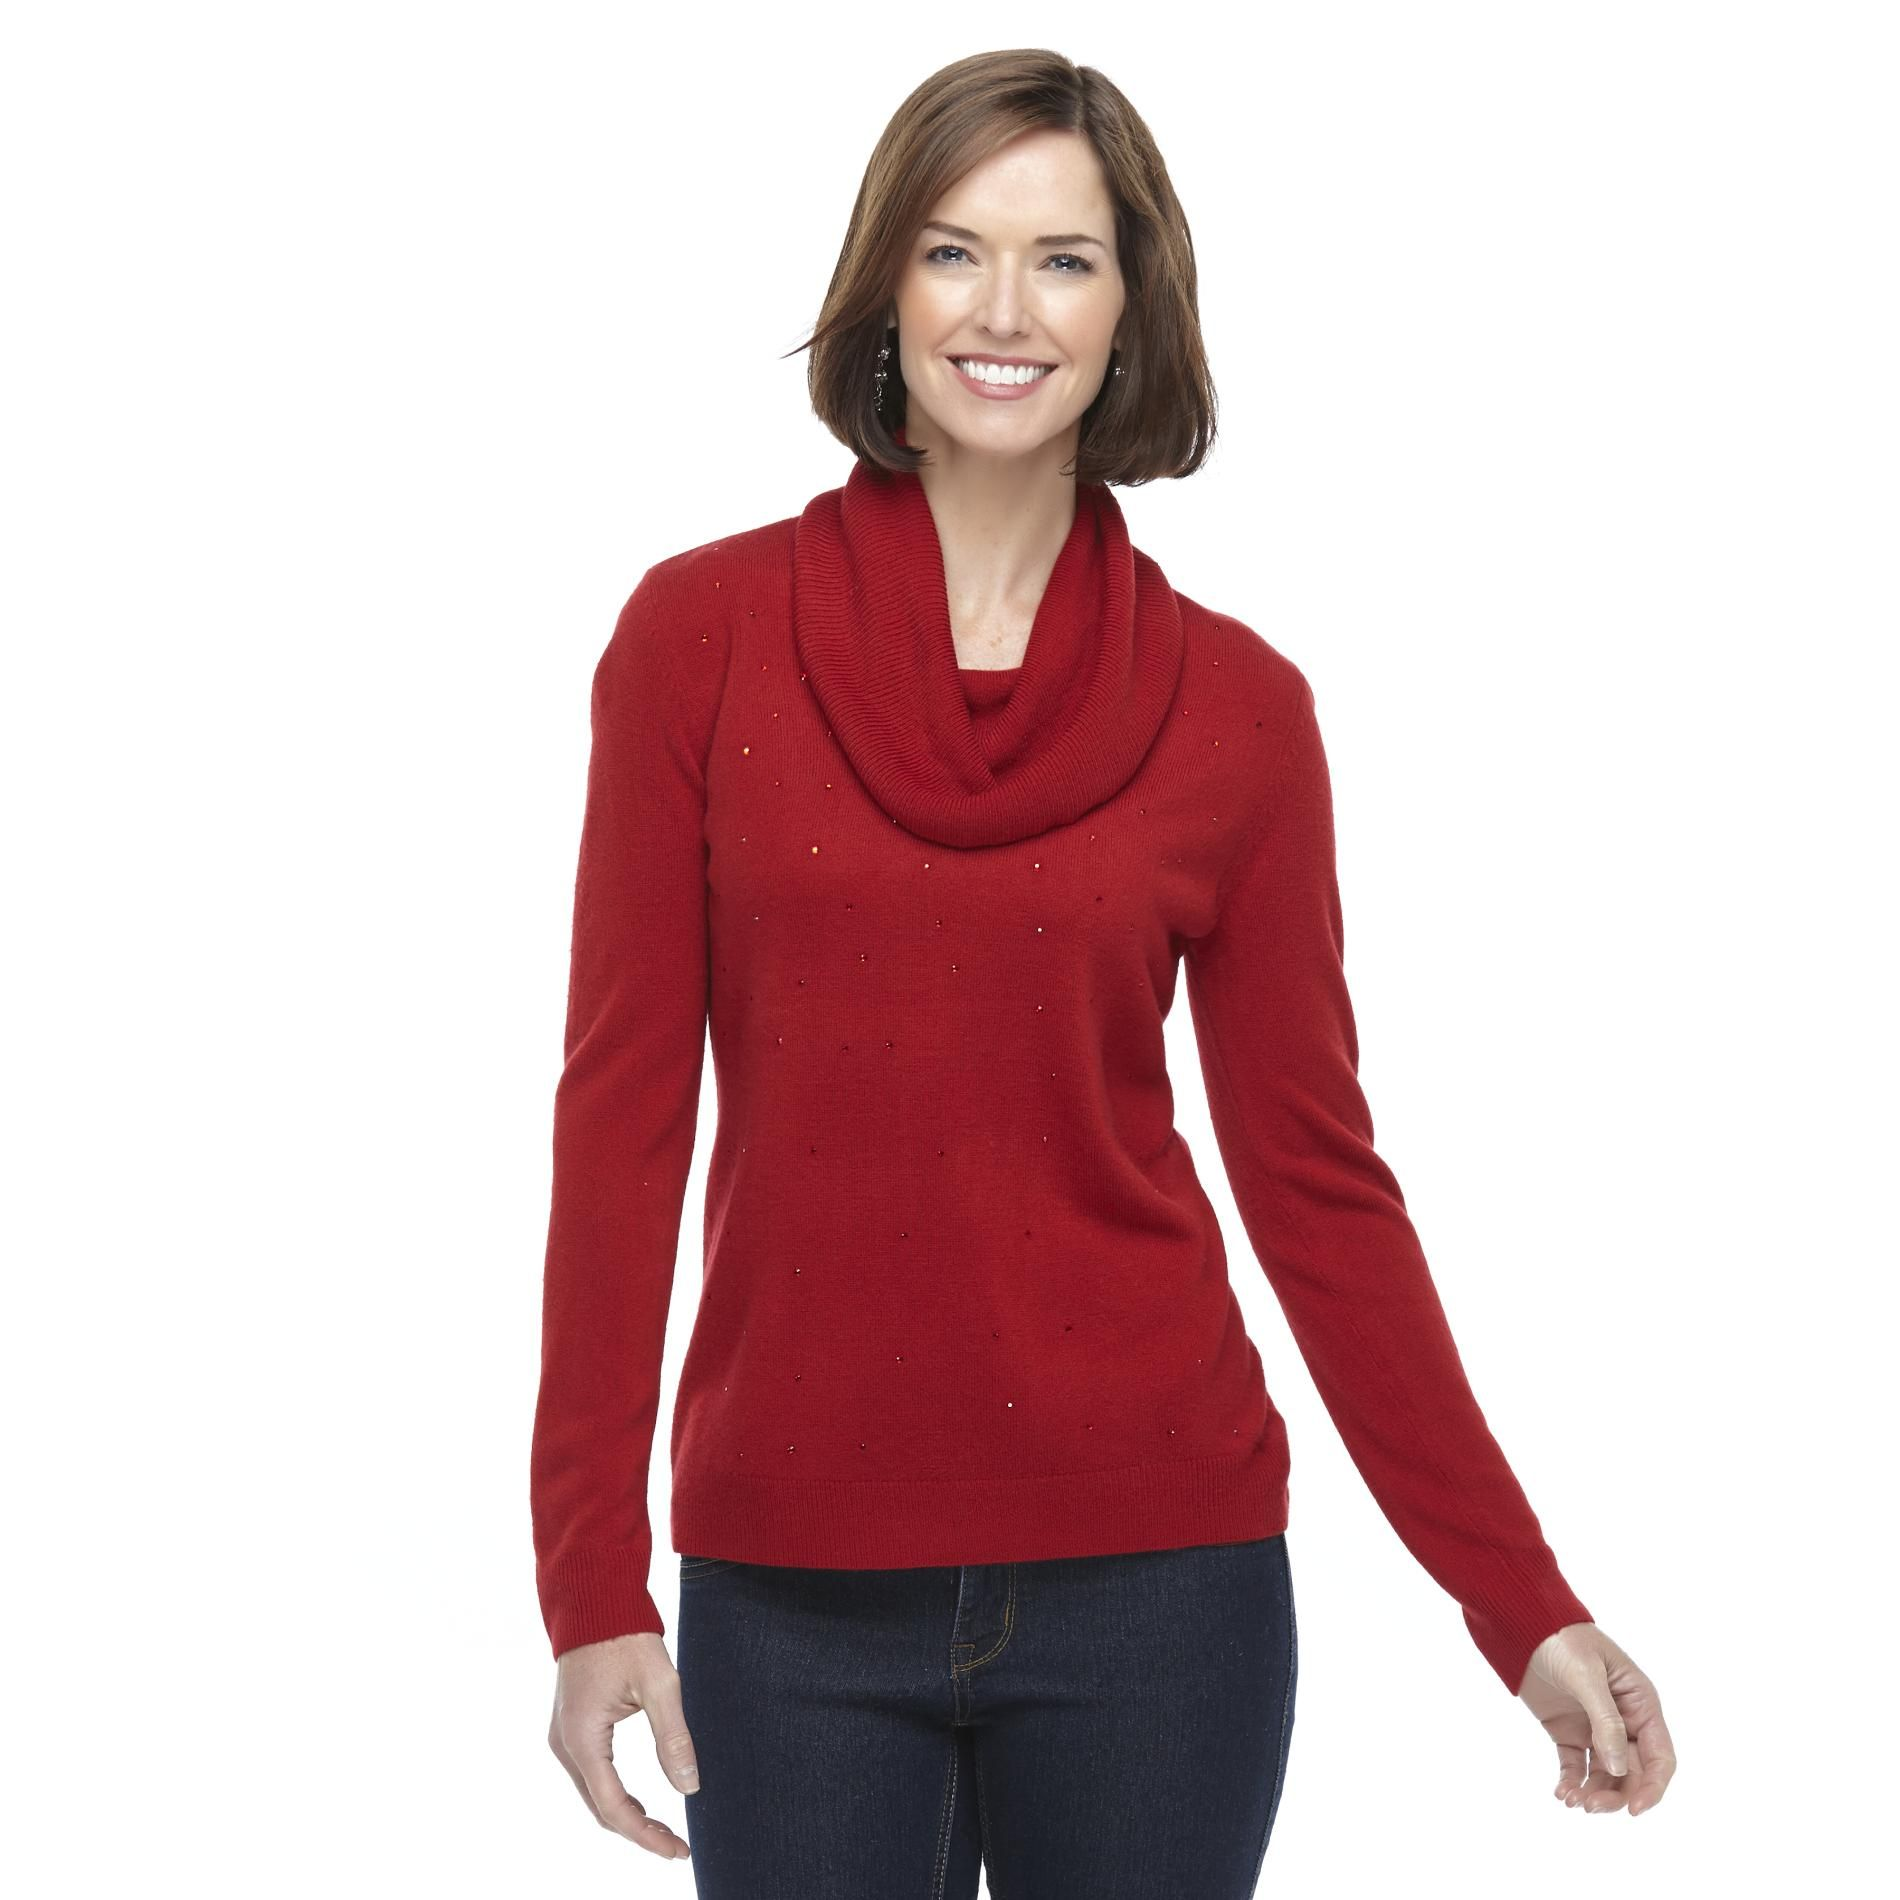 Sweaters For Women Kmart | www.topsimages.com